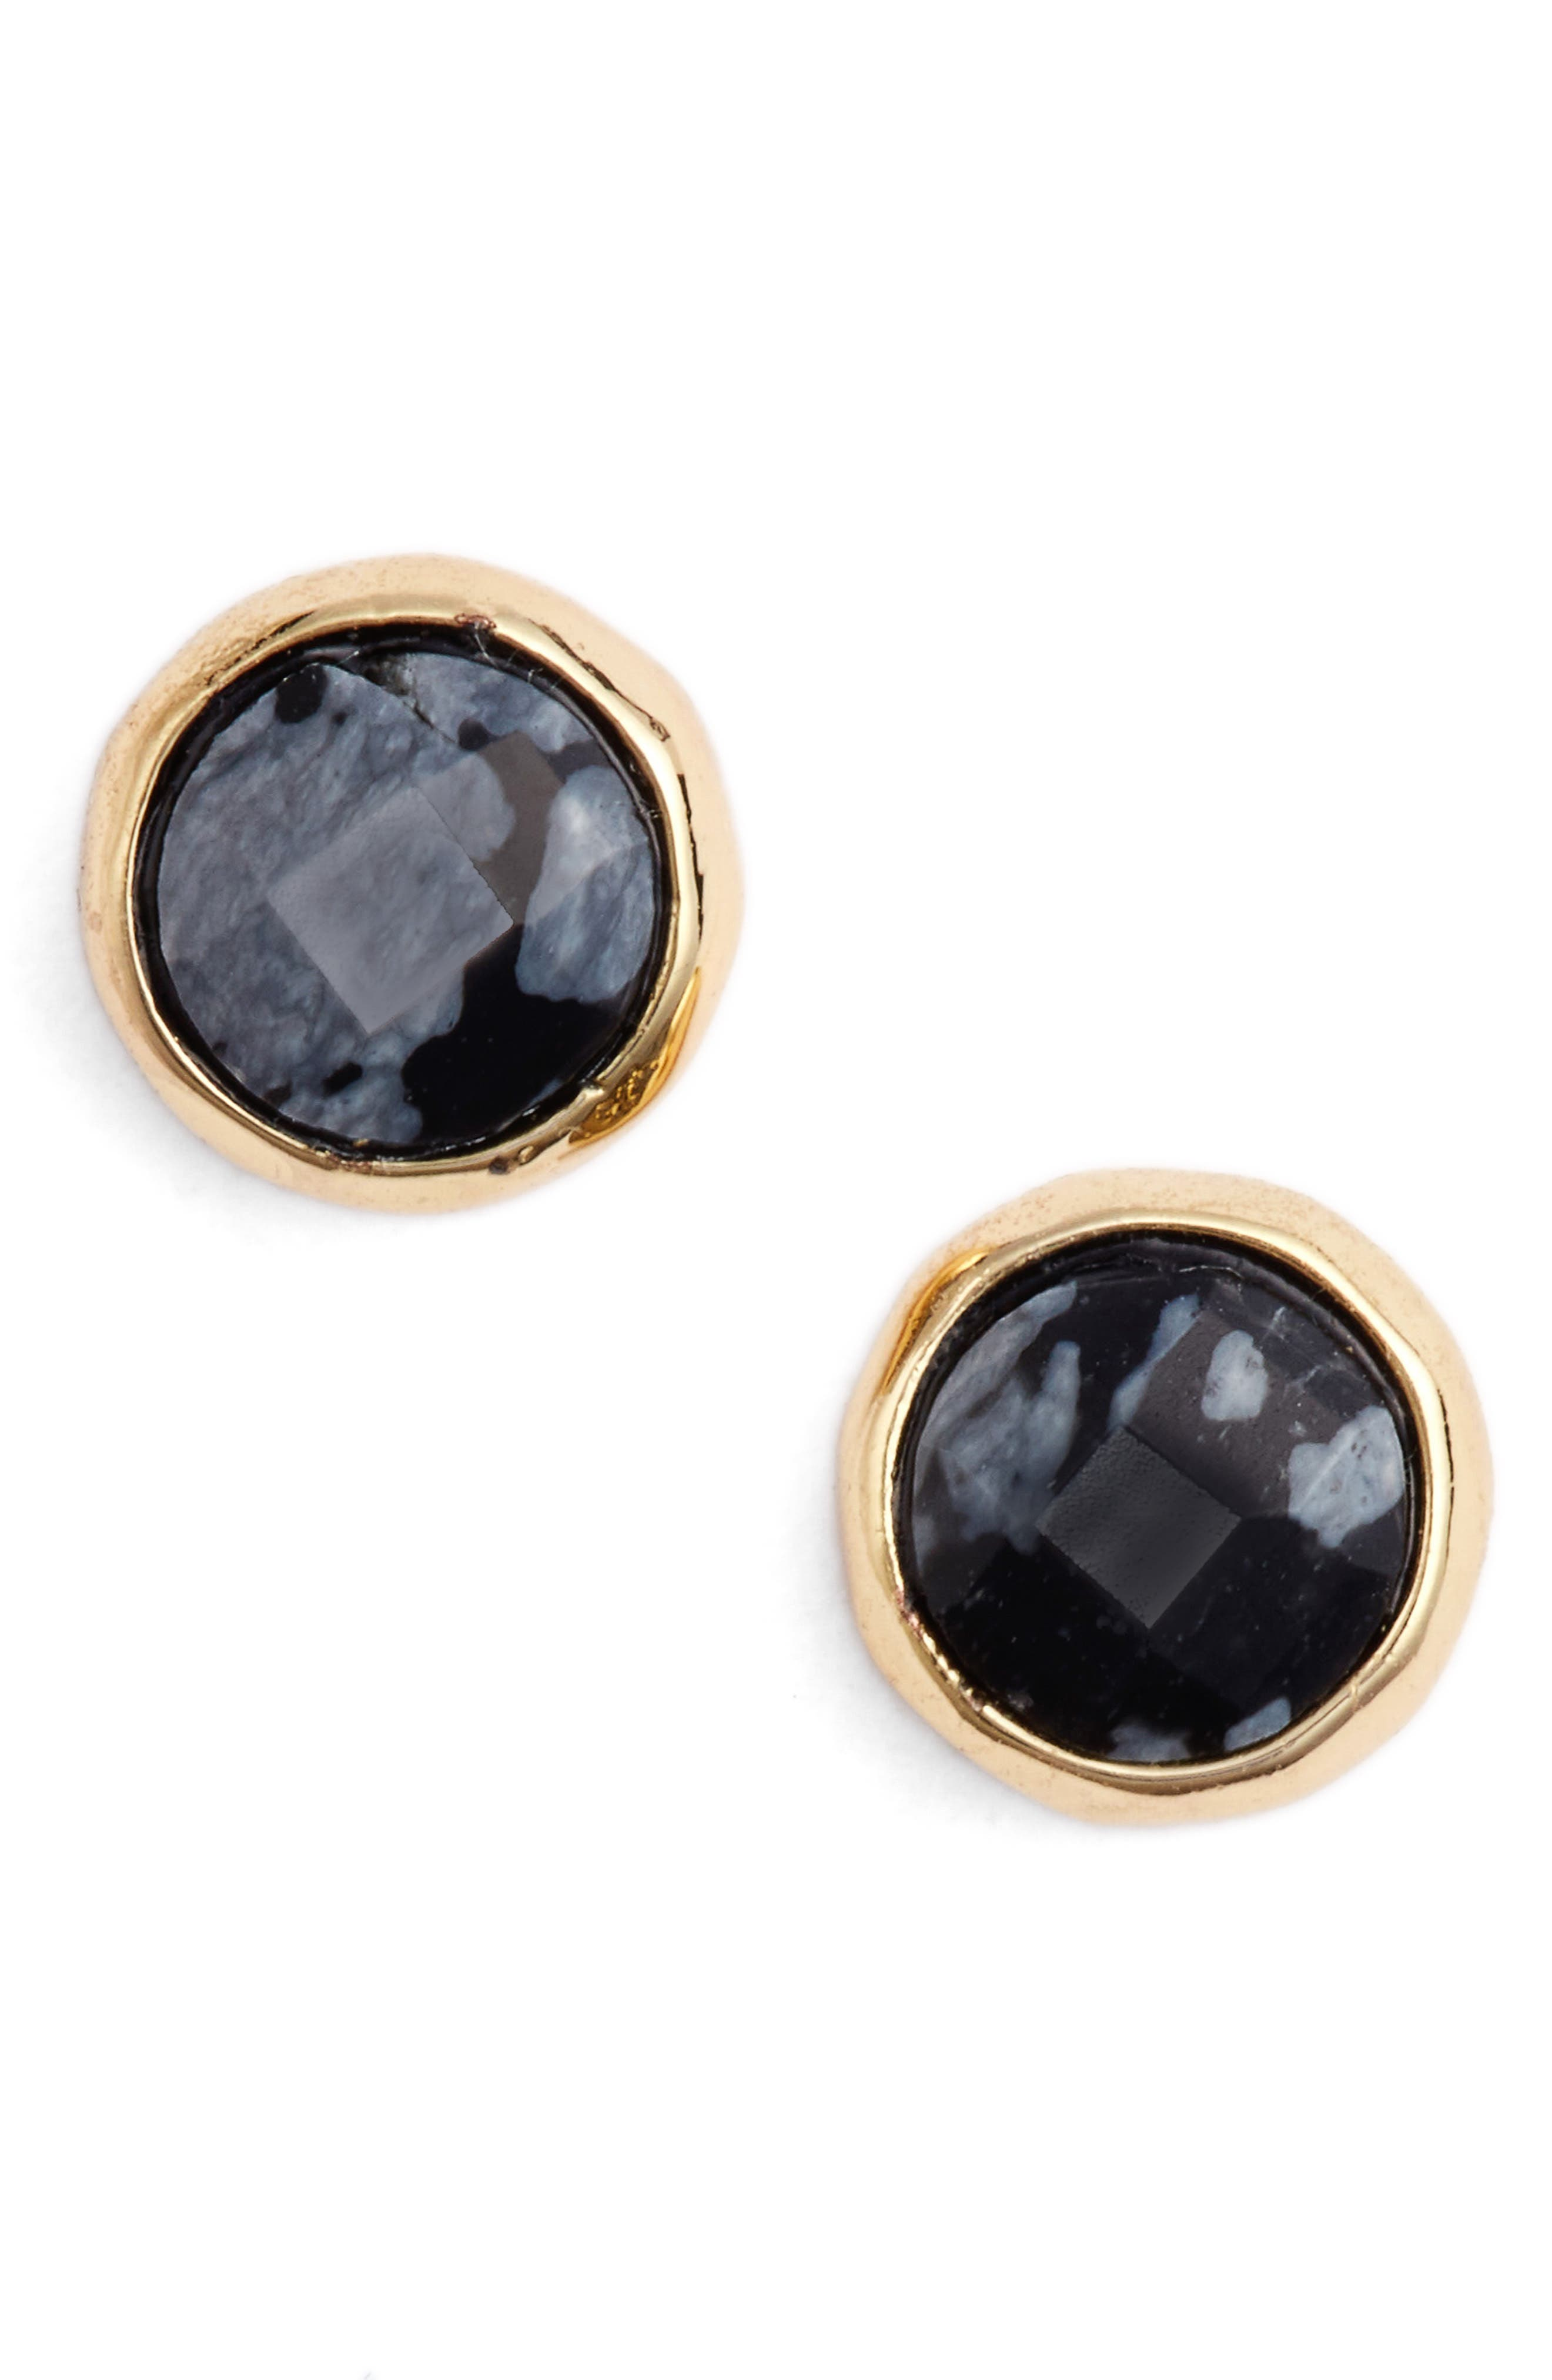 Courage Stud Earrings,                         Main,                         color, Snowflake Obsidian/ Gold